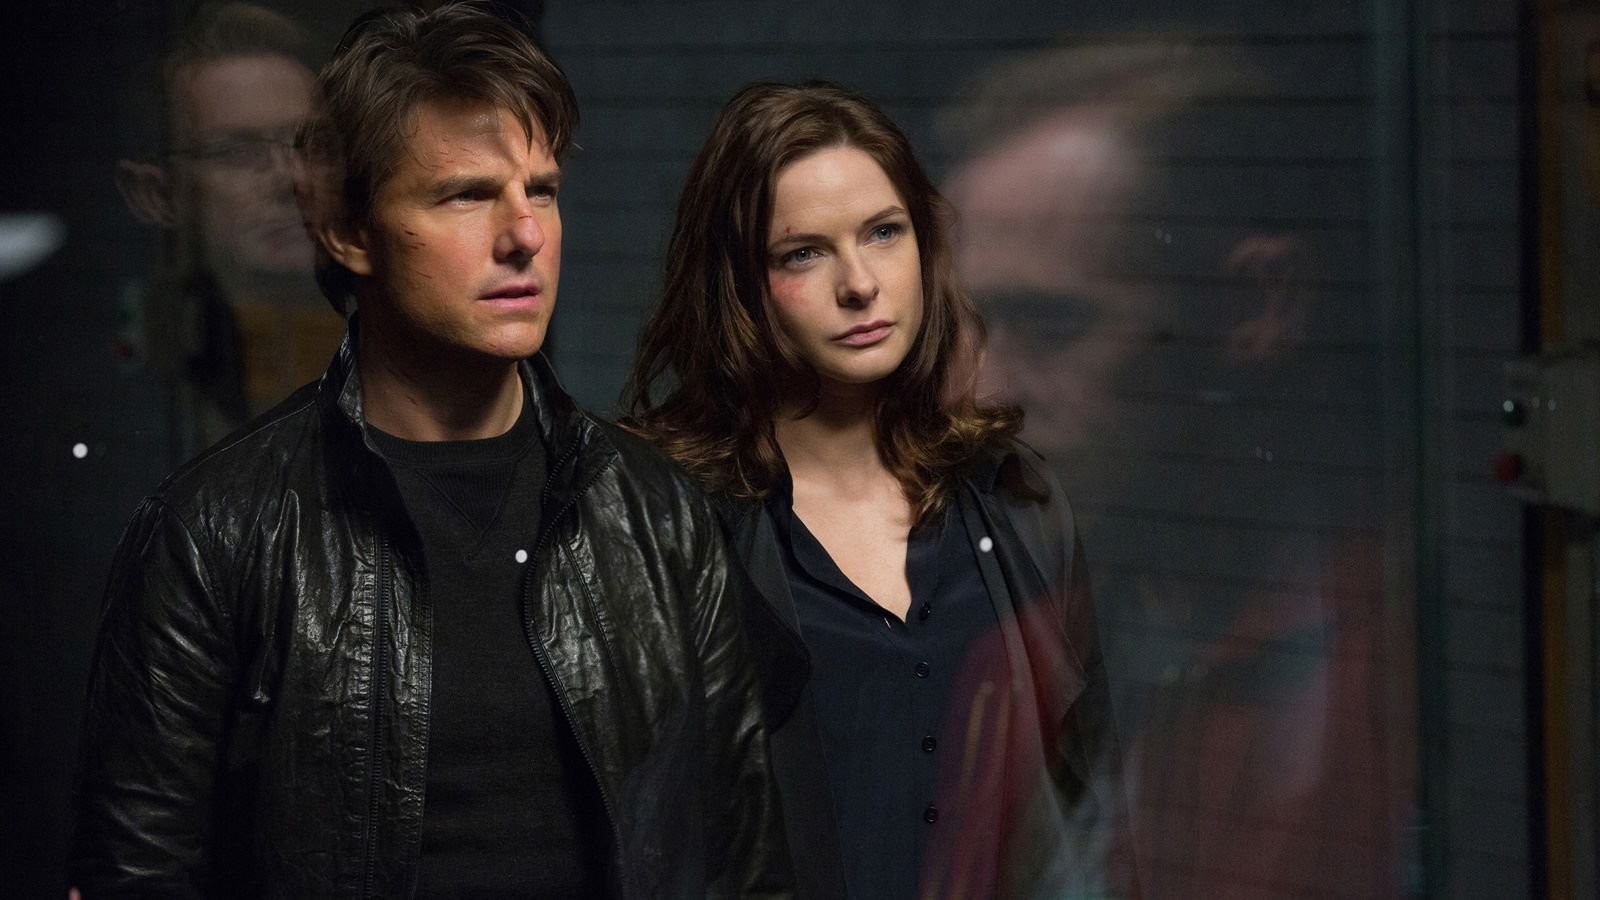 Mission Impossible 5 Car Mission Impossible 5 Art